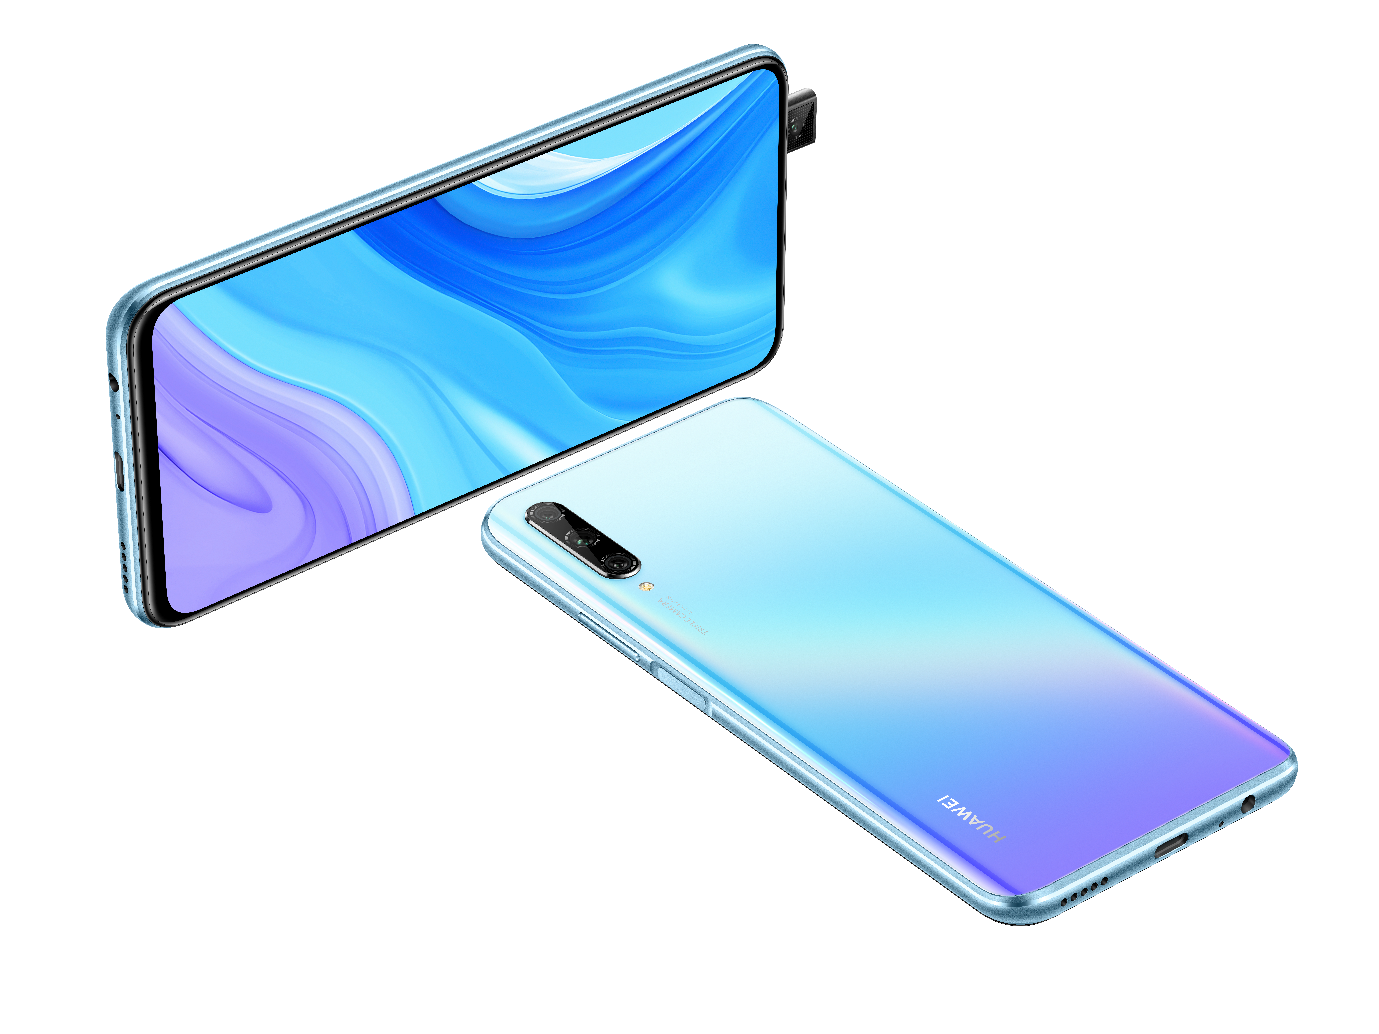 A stunning new display and a pop-up camera are among the coolest features of the new HUAWEI Y9s